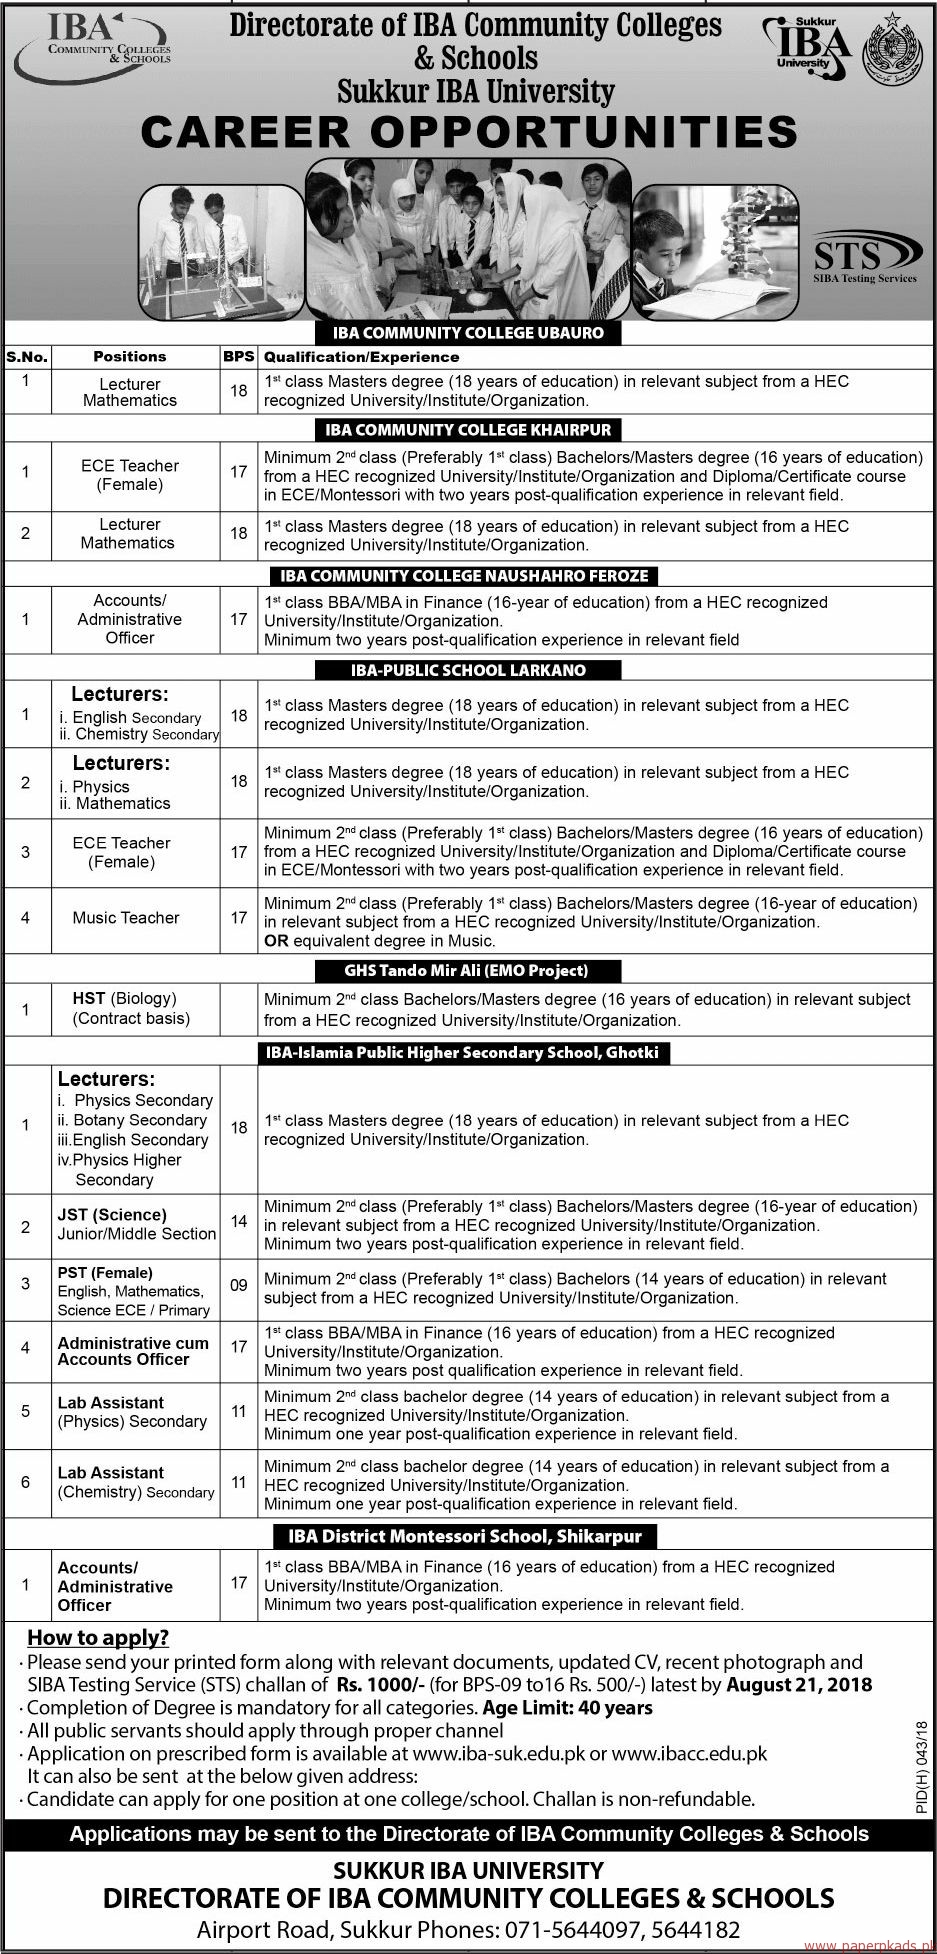 IBA Sukkur University Jobs 2018 Latest